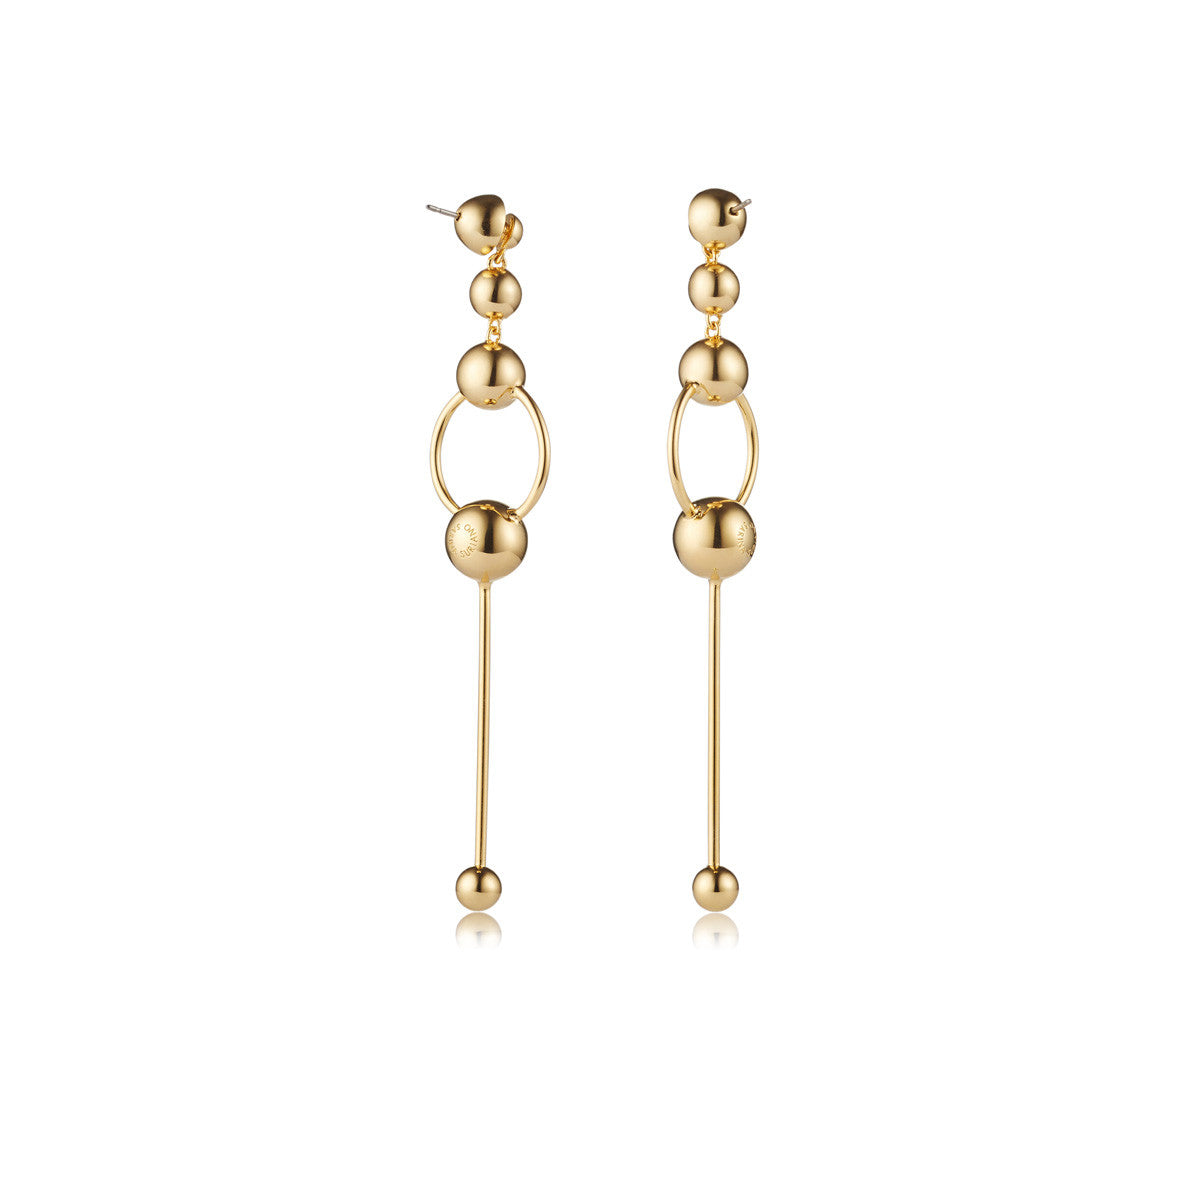 Solid brass, 18K gold plated Orbita earrings with graduating spheres will take you from day to night - back